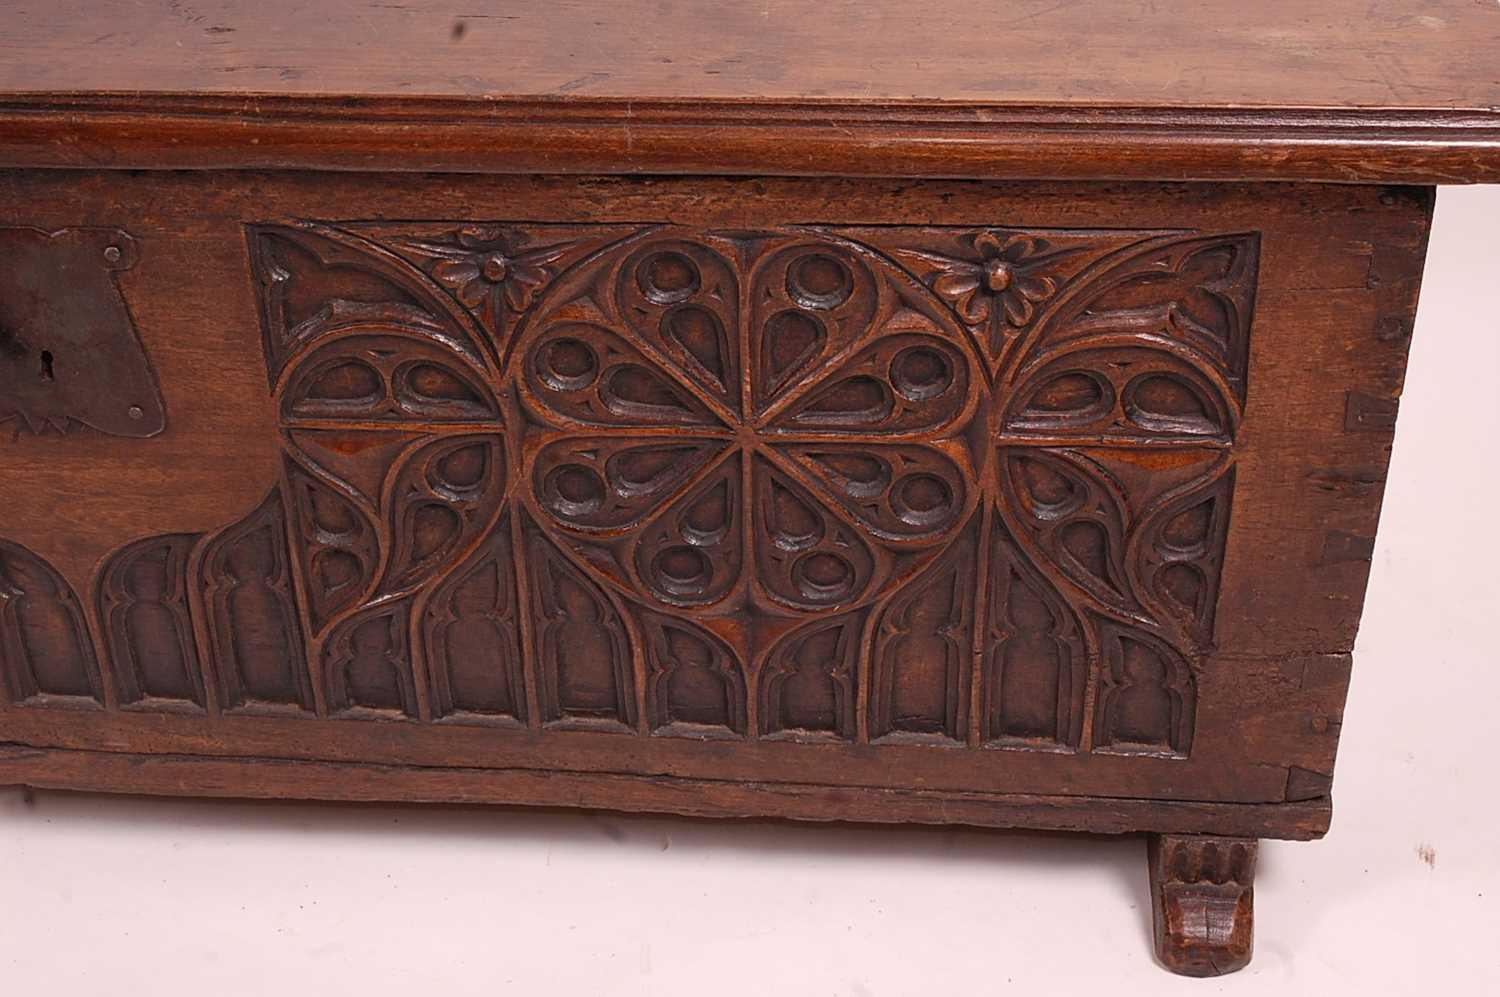 An antique joined and heavy planked oak blanket chest, having Gothic Revival relief carved front - Image 3 of 3